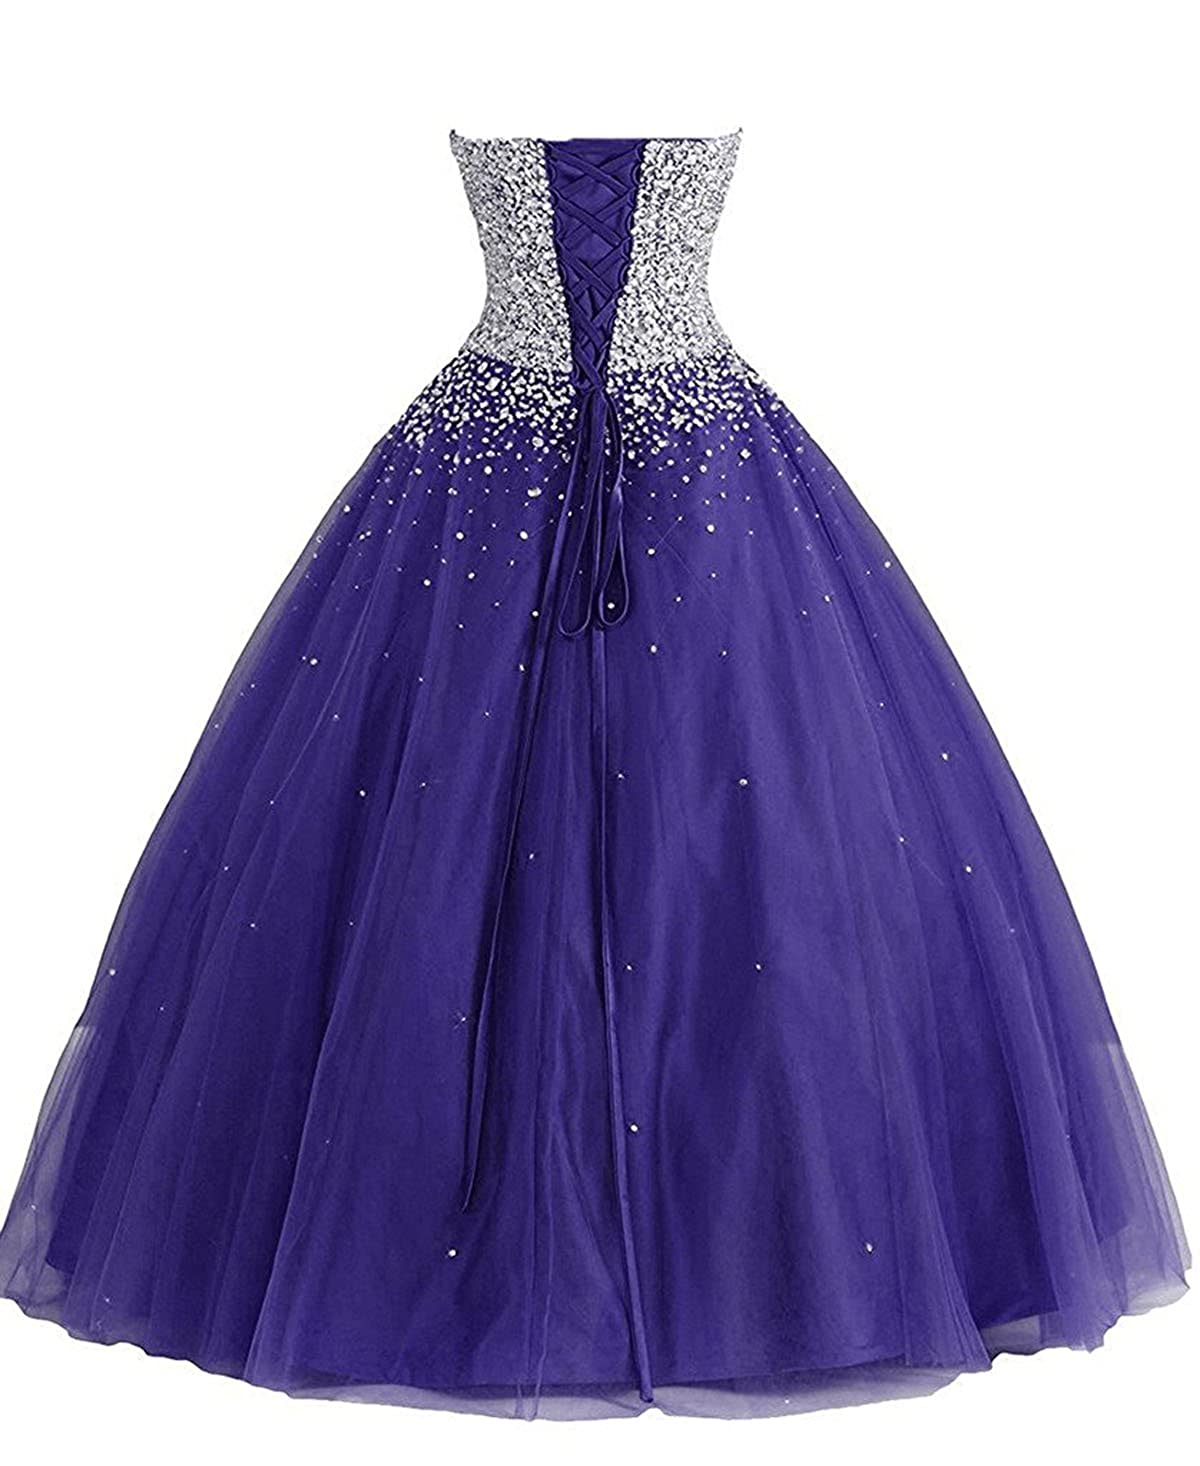 ZVOCY Women\'s Tulle Beaded Quinceanera Dress Ball Gown Prom Dress ...